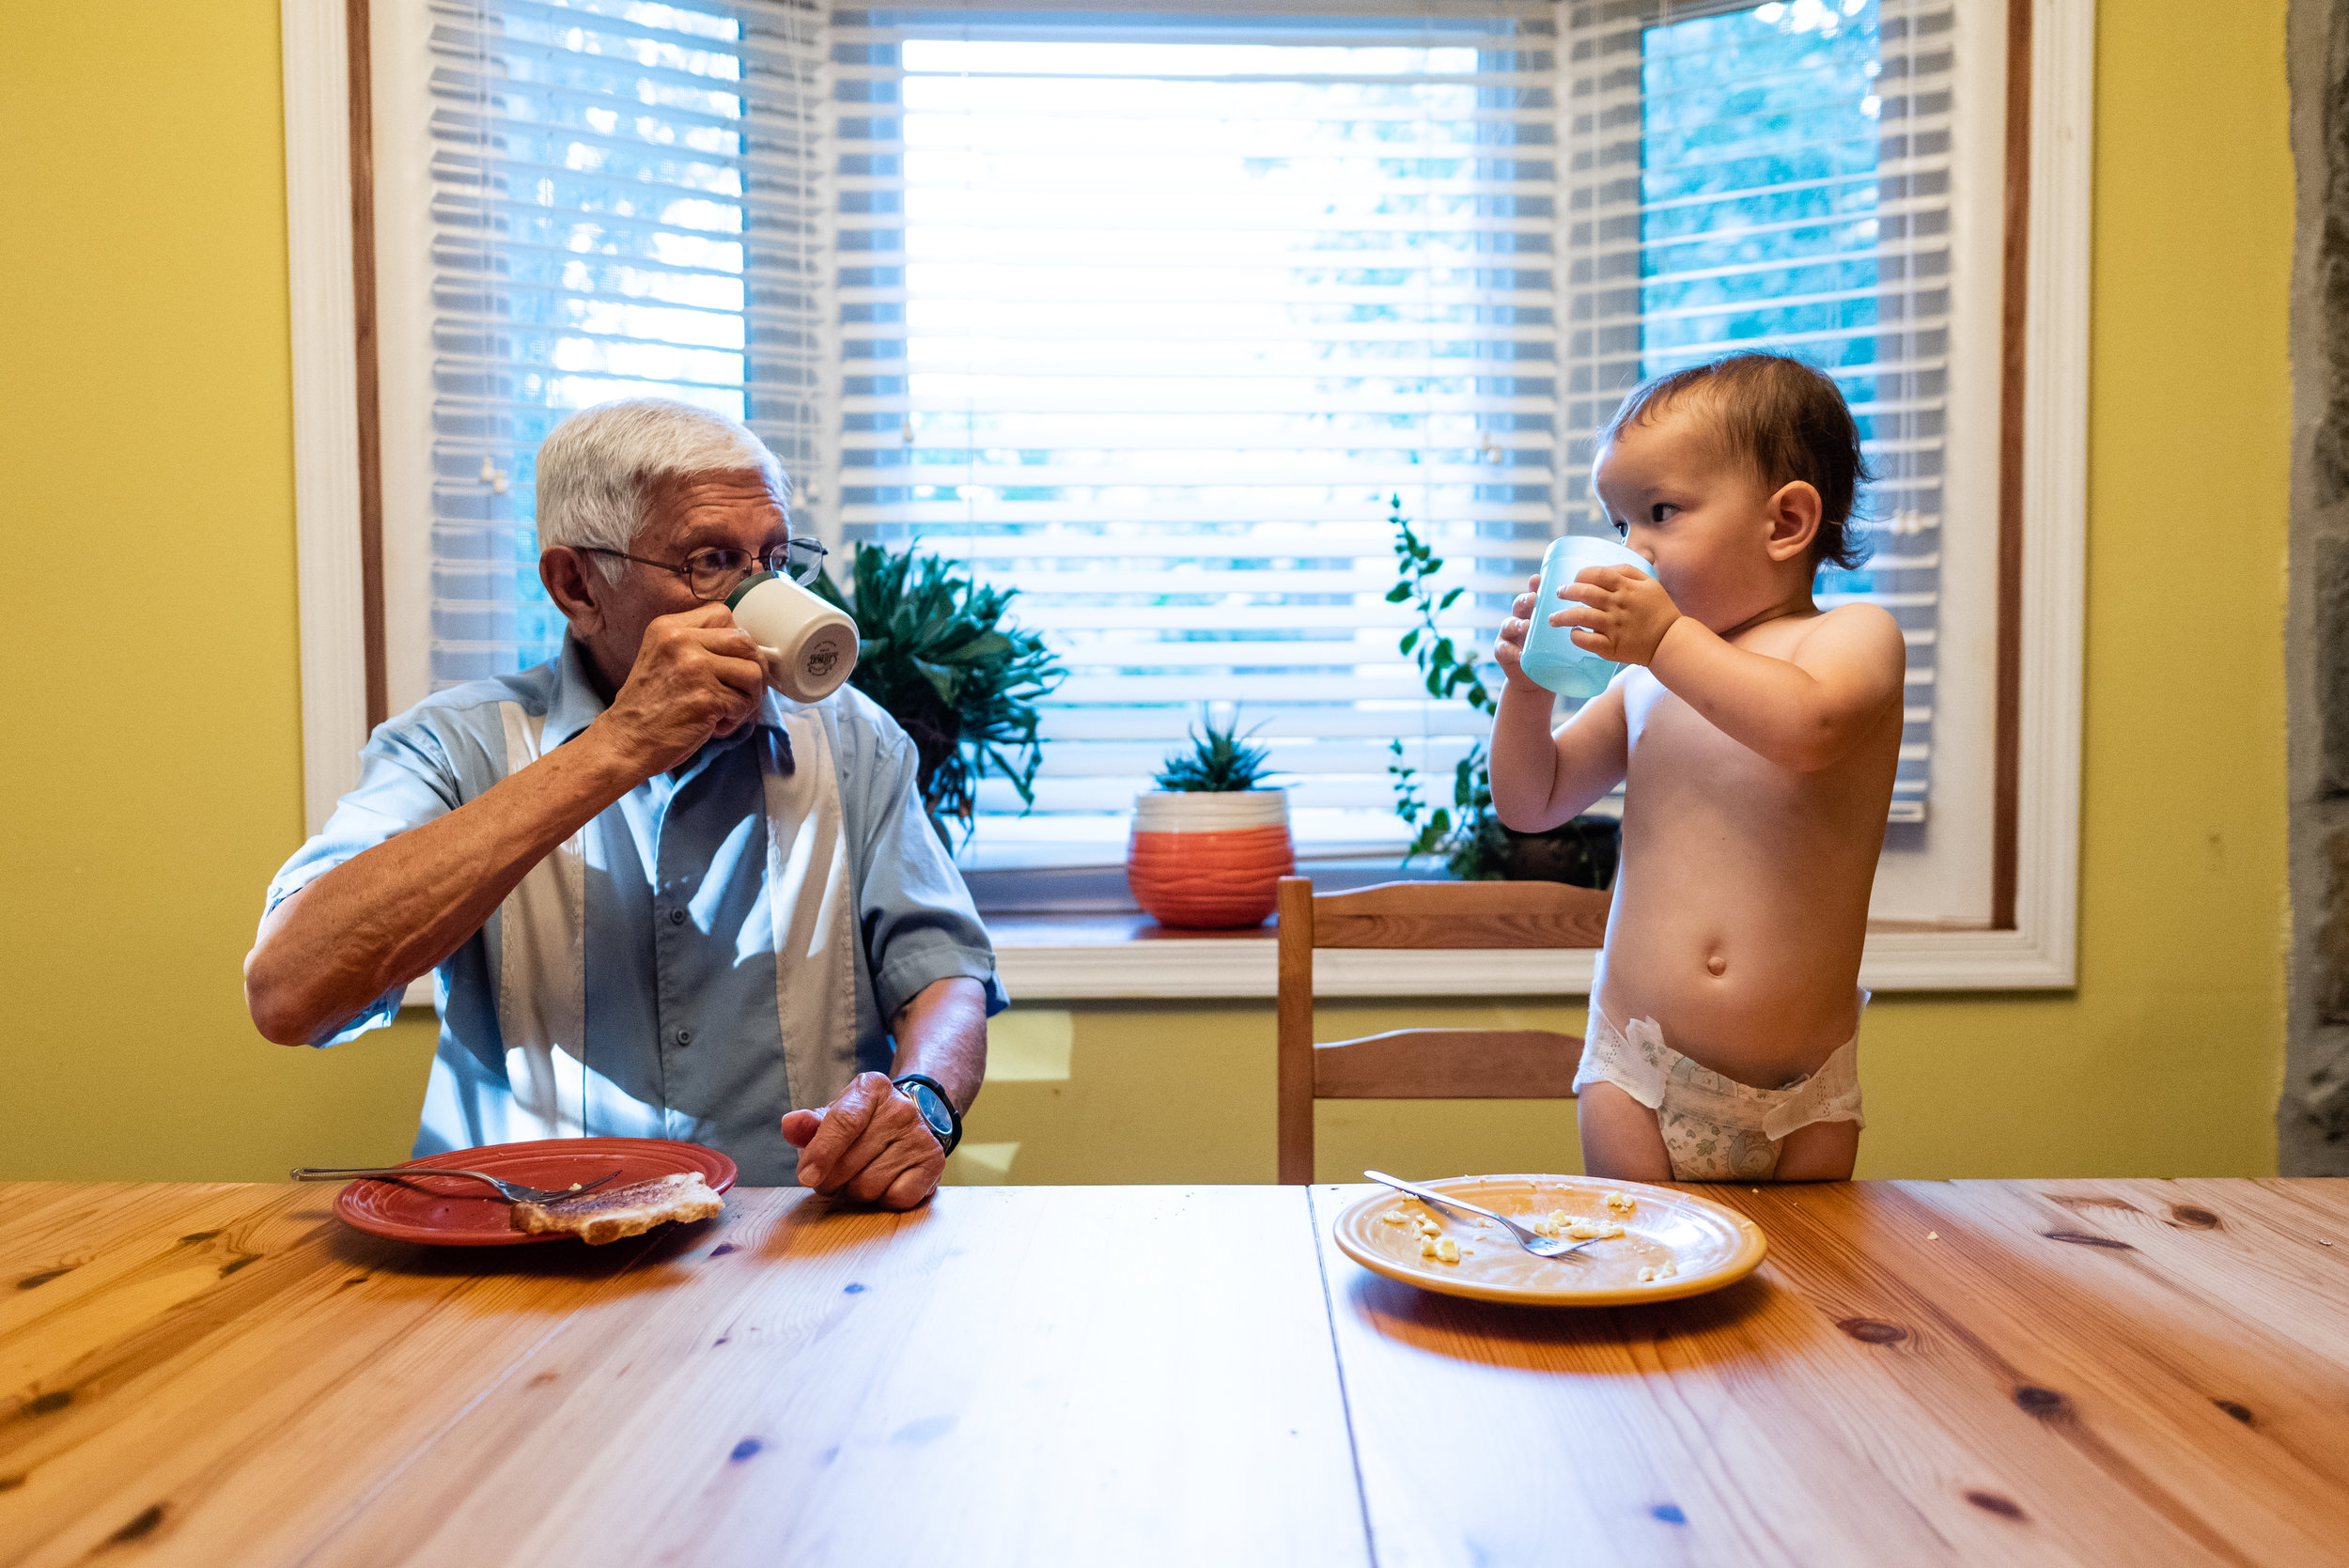 Toddler and Grandpa drinking coffee together by Northern Virginia Family Photographer Nicole Sanchez